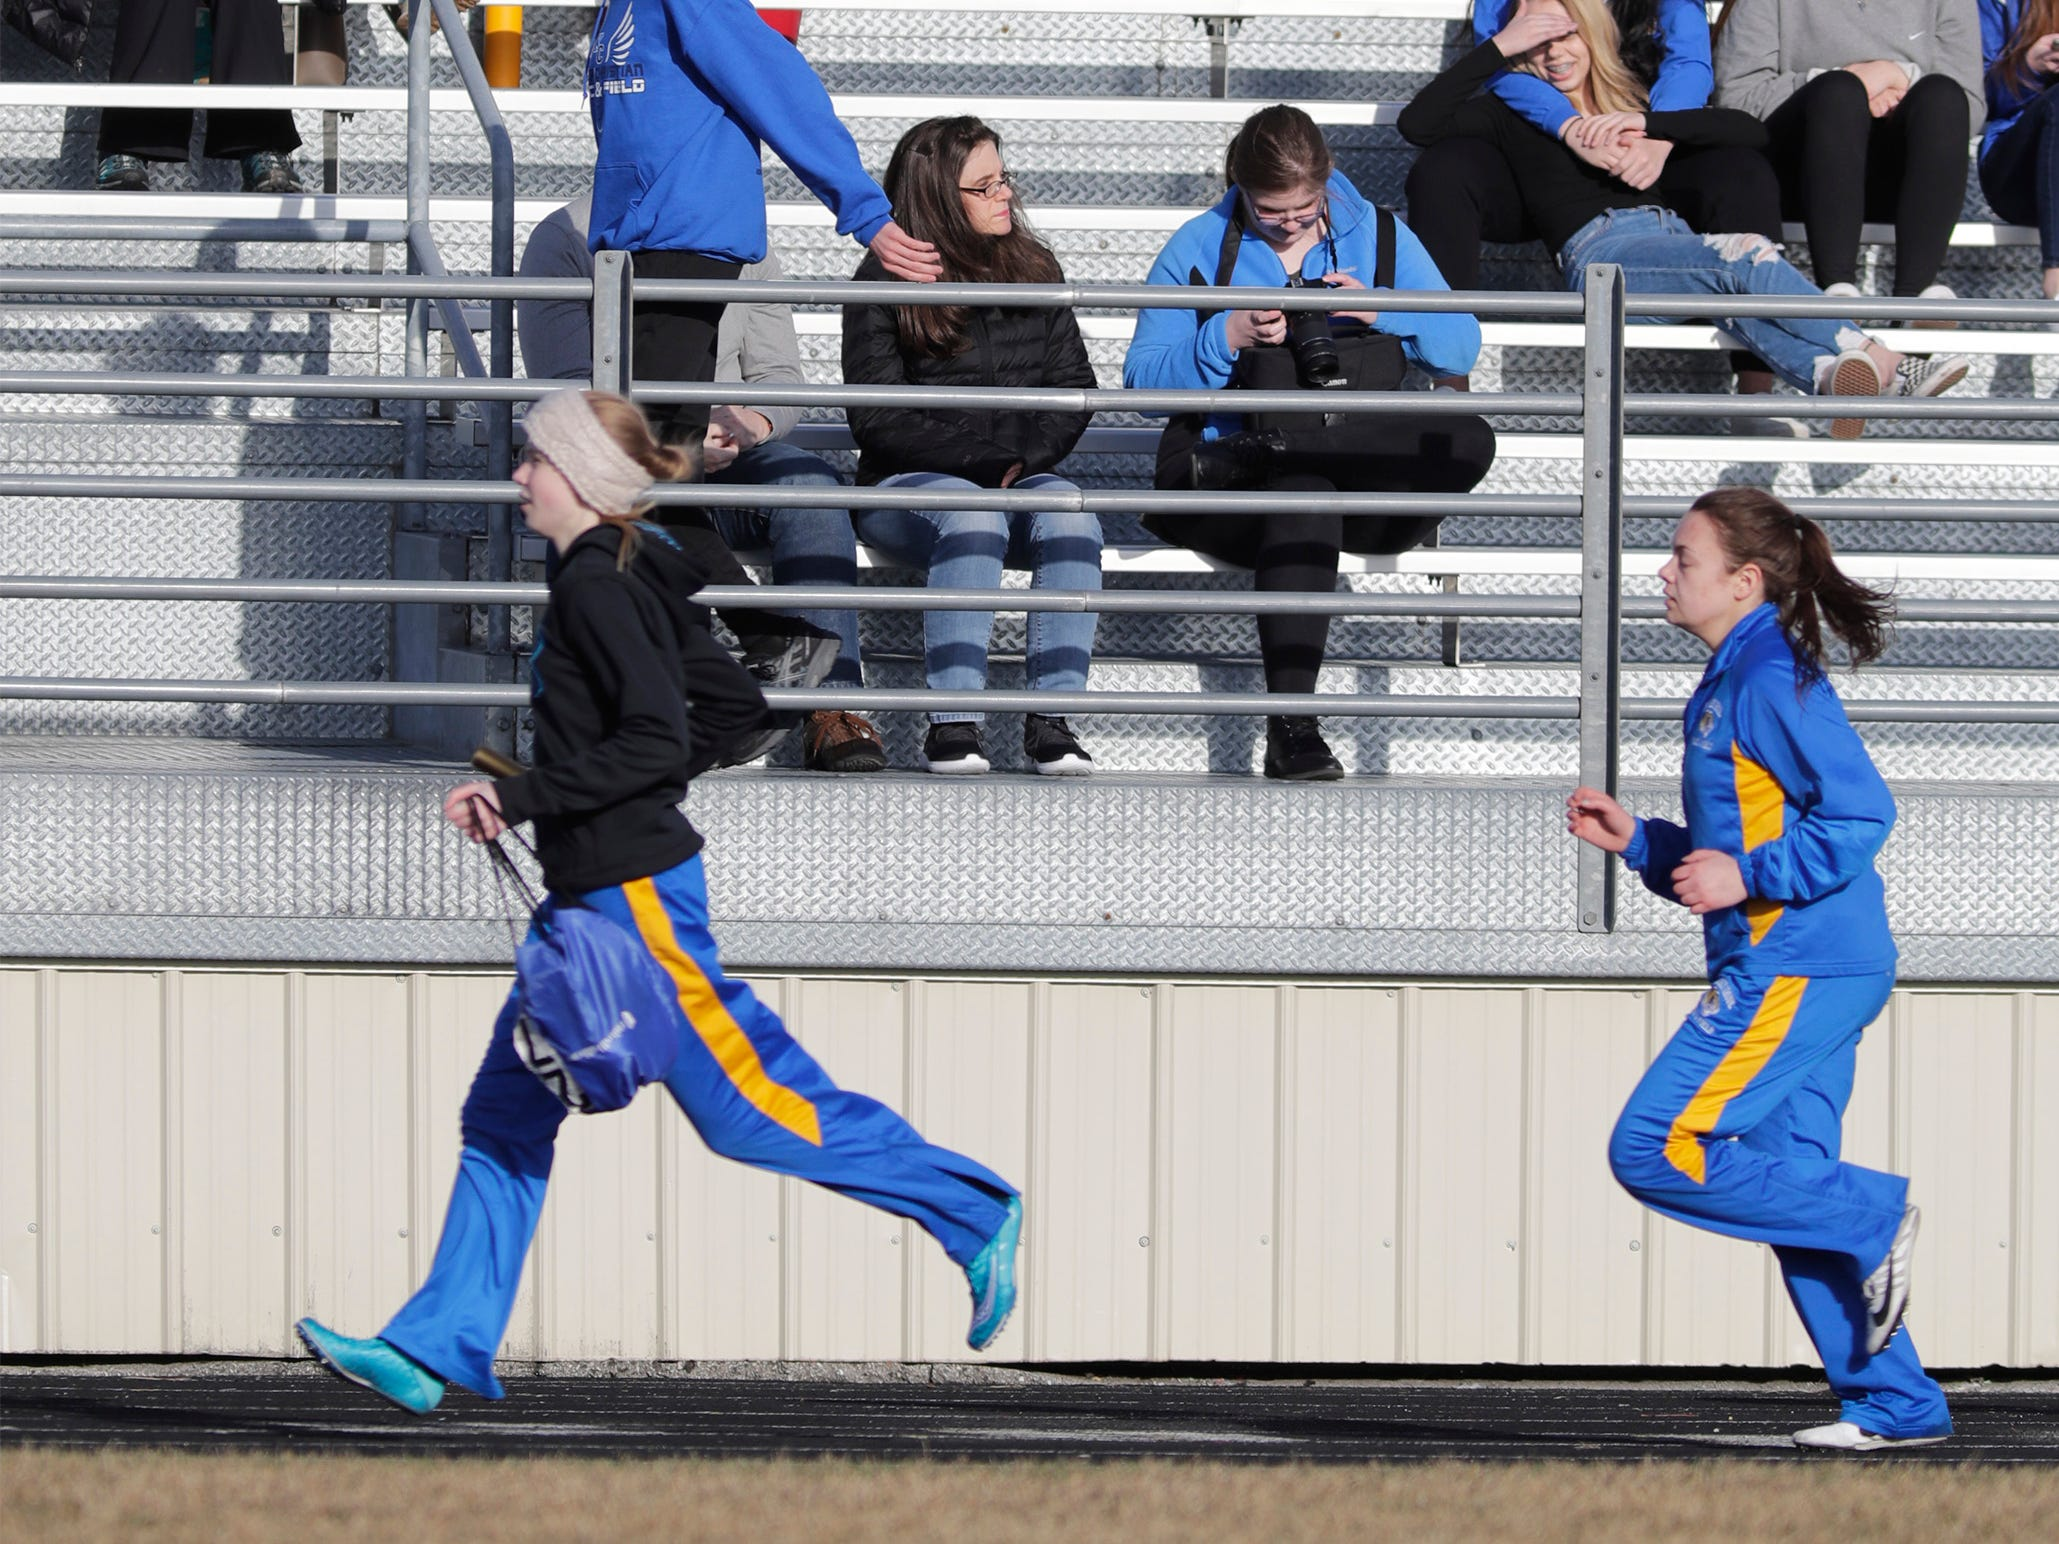 Track spectators watch action on the track at the Howards Grove track meet, Tuesday, April 9, 2019, in Howards, Wis.